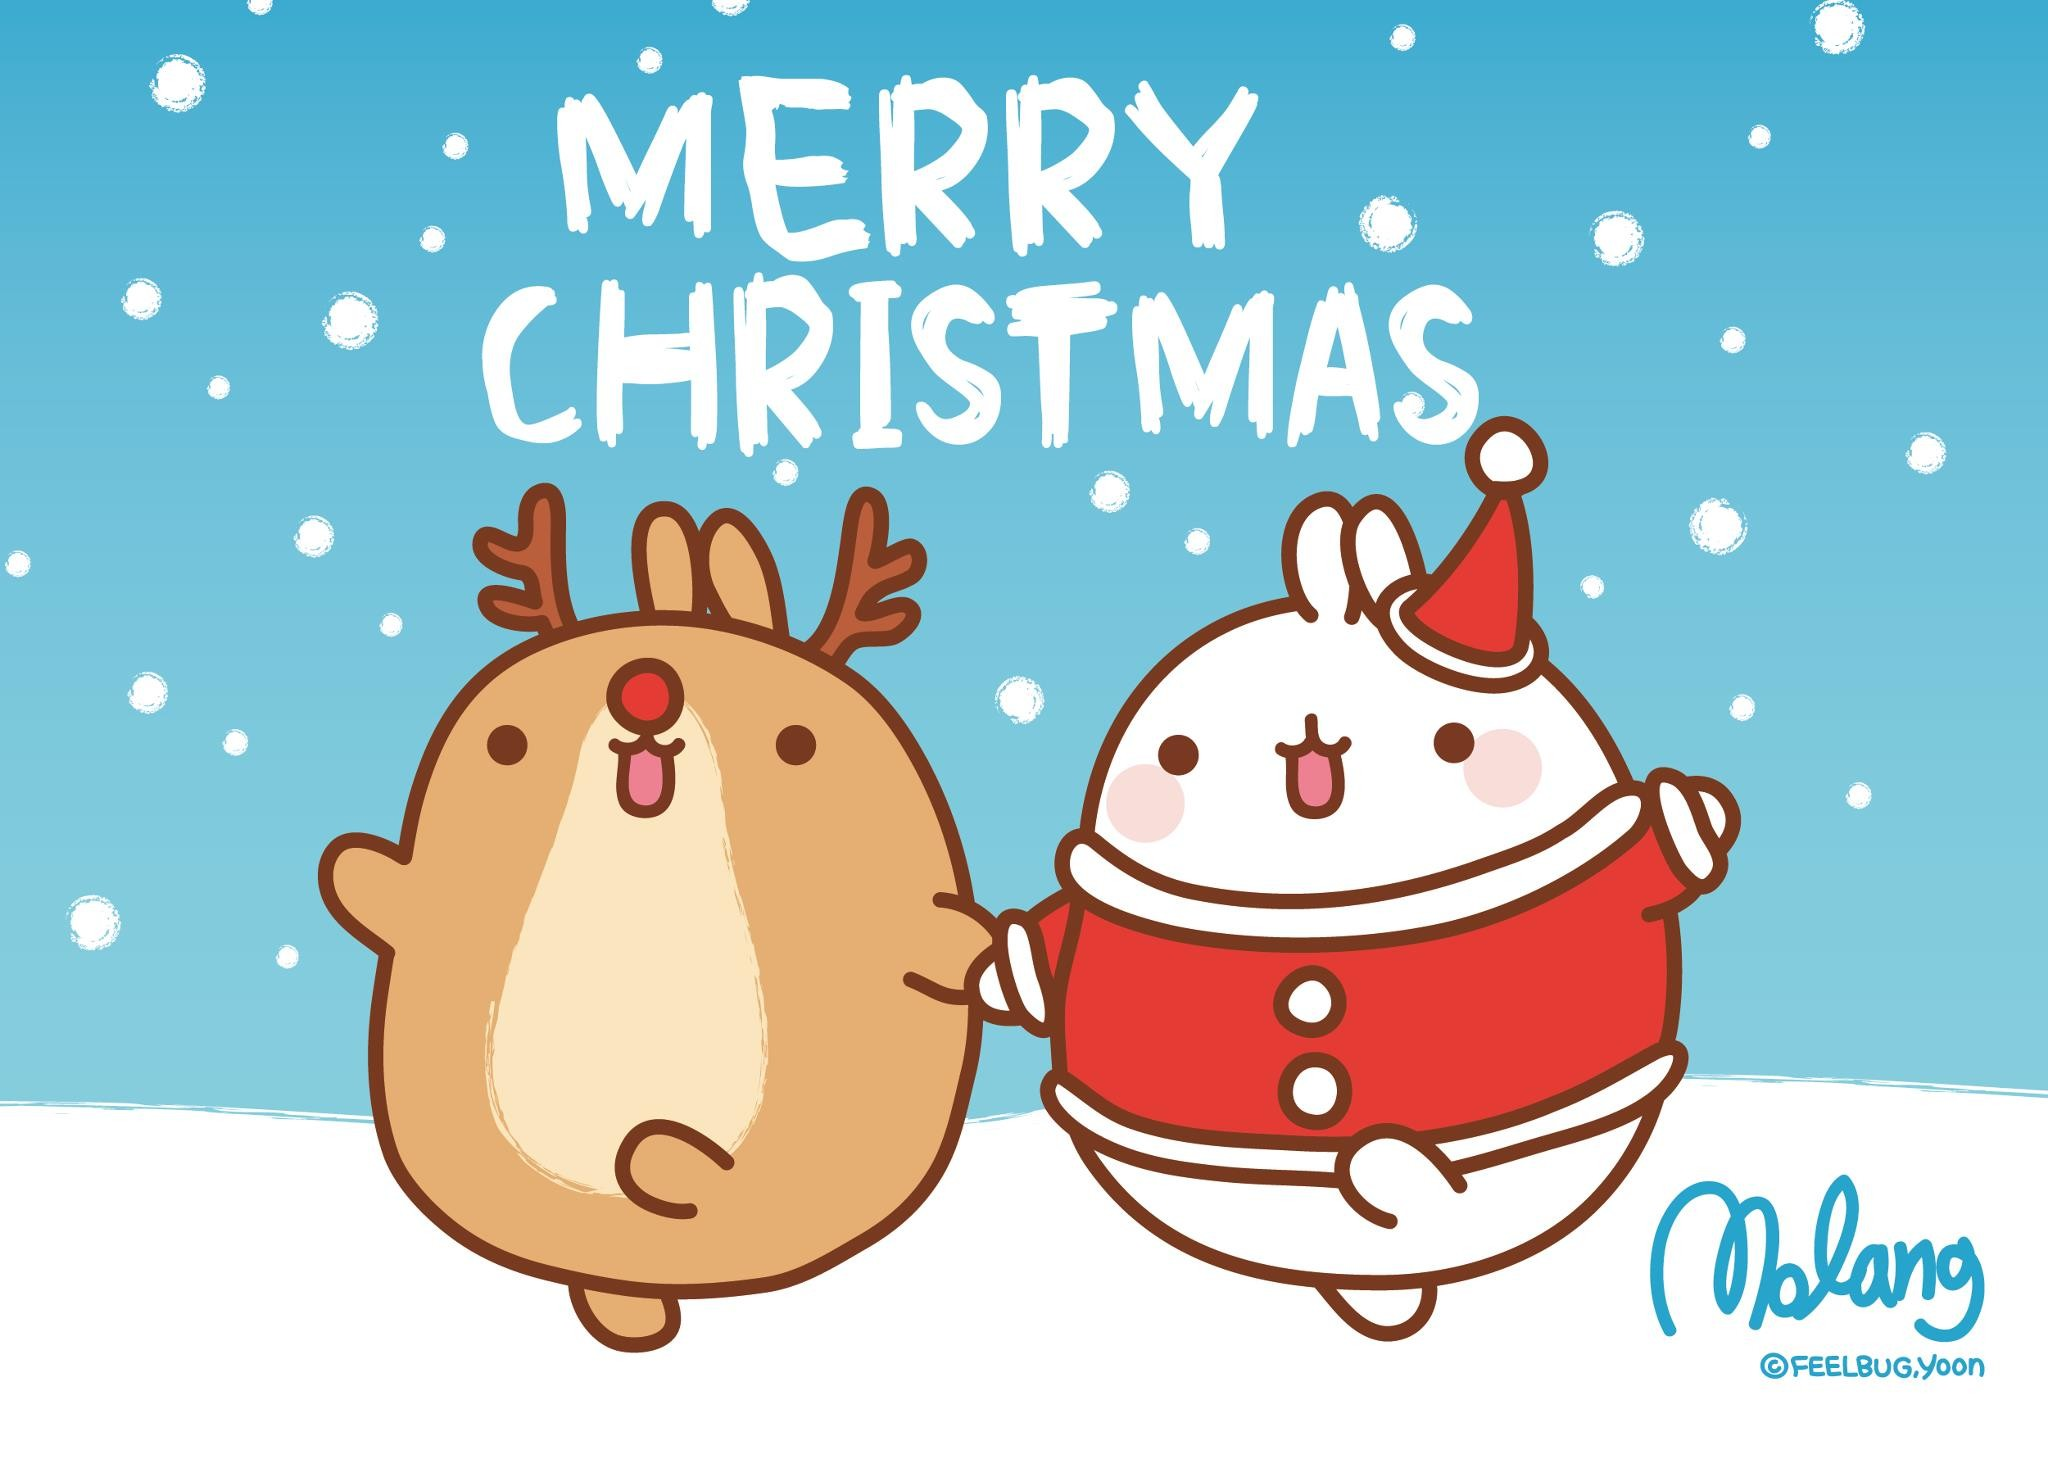 San-X Molang Christmas Desktop Wallpapers – Here are 3 super cute Molang  Desktop Backgrounds for Christmas! Click each image to be taken to the full  size …